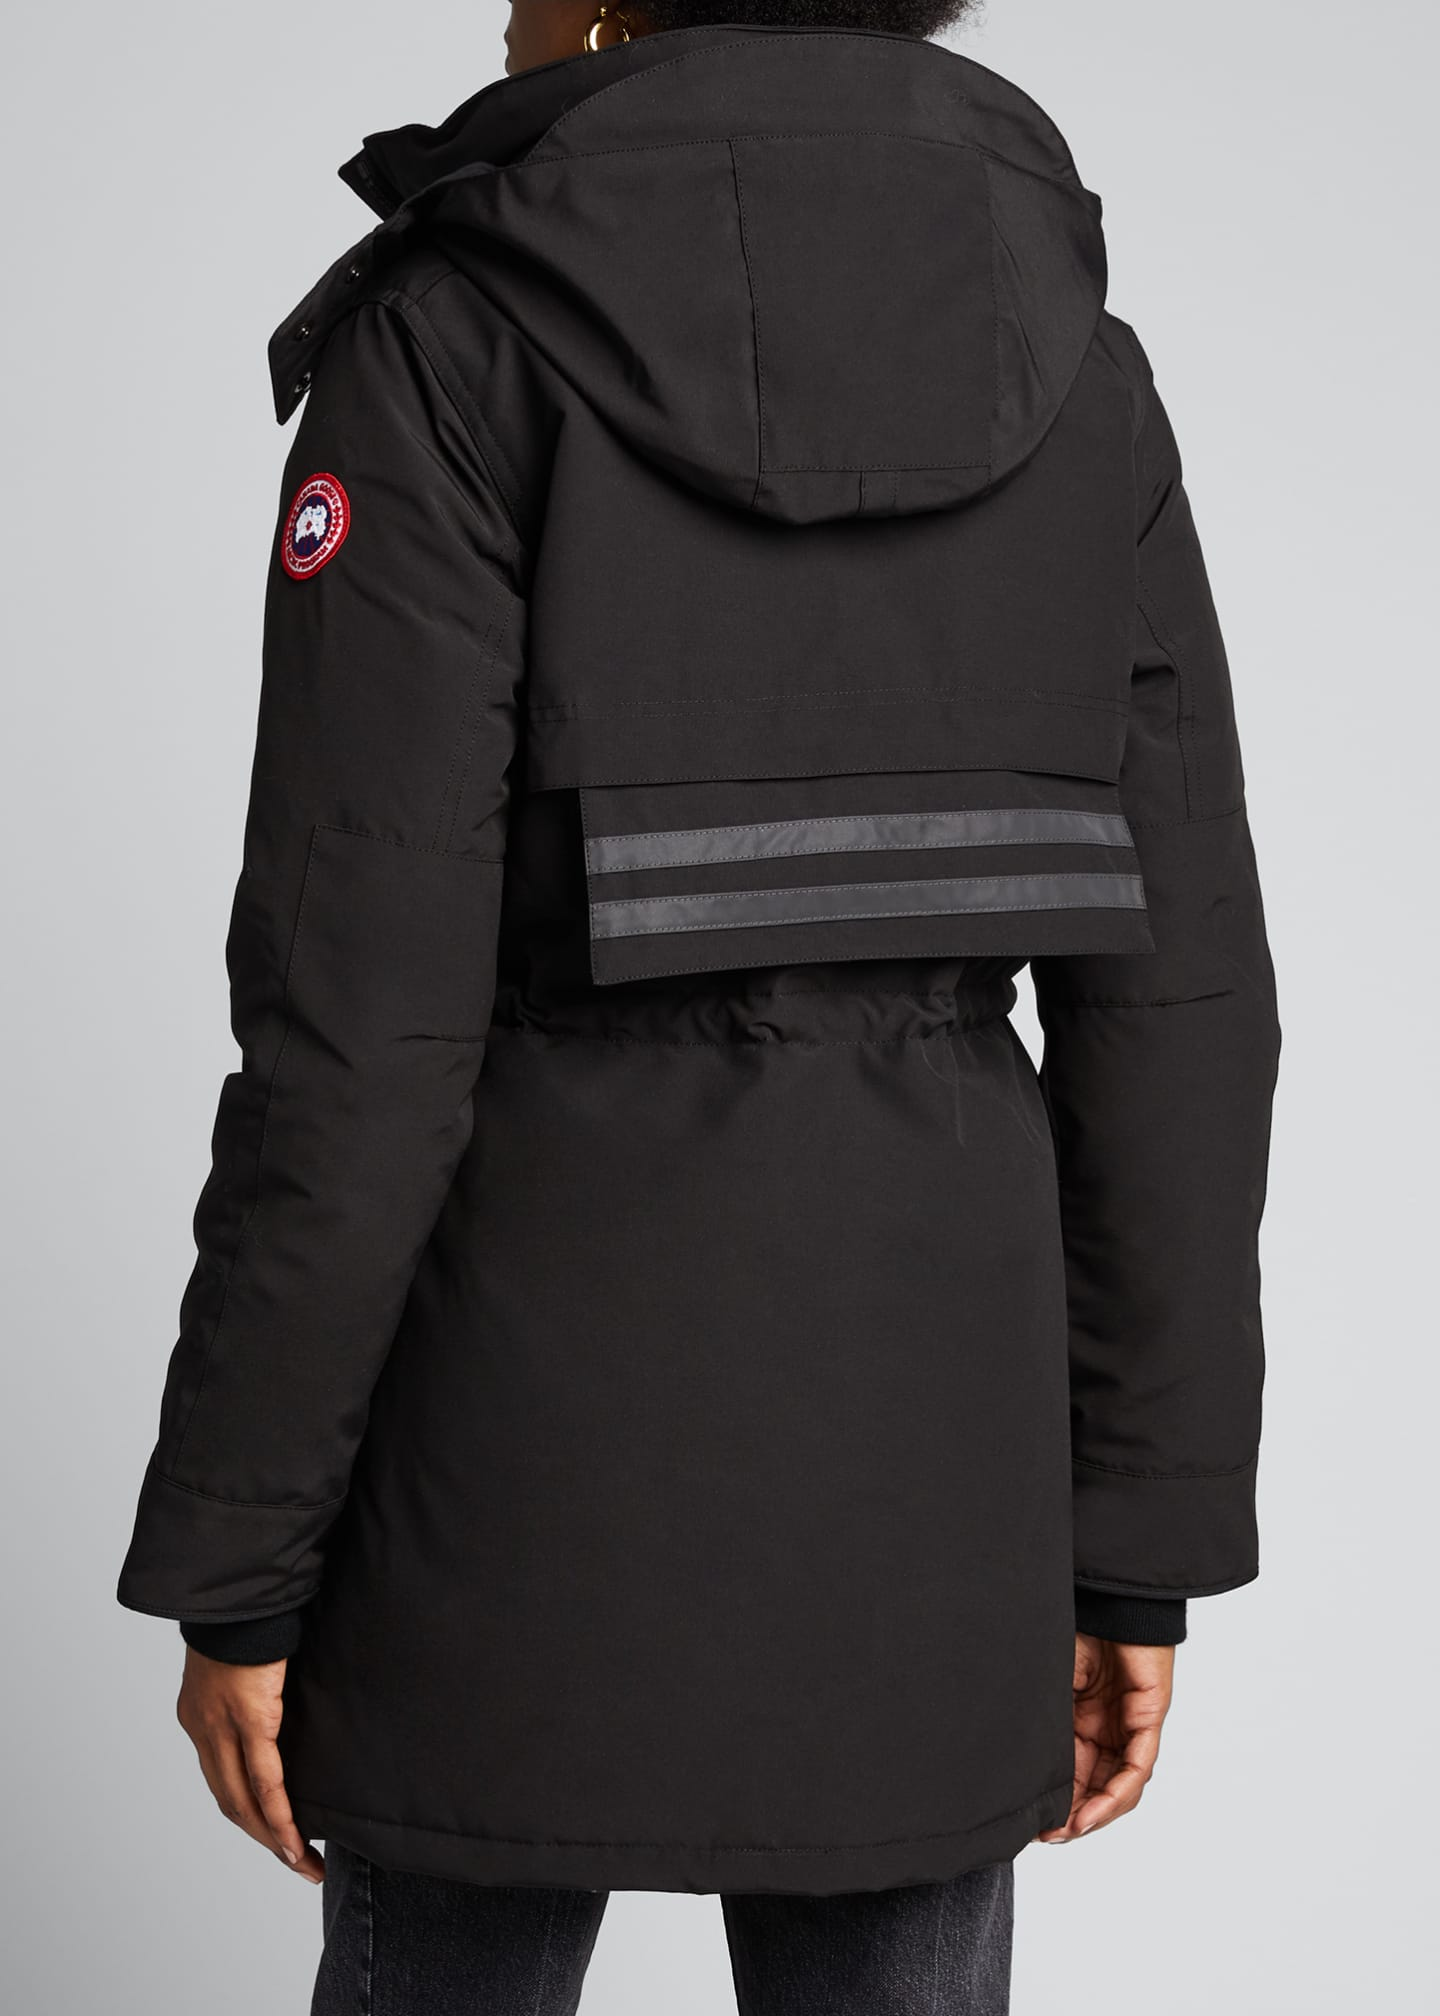 Image 2 of 5: Gabriola Hooded Parka Coat w/ Reflective Back